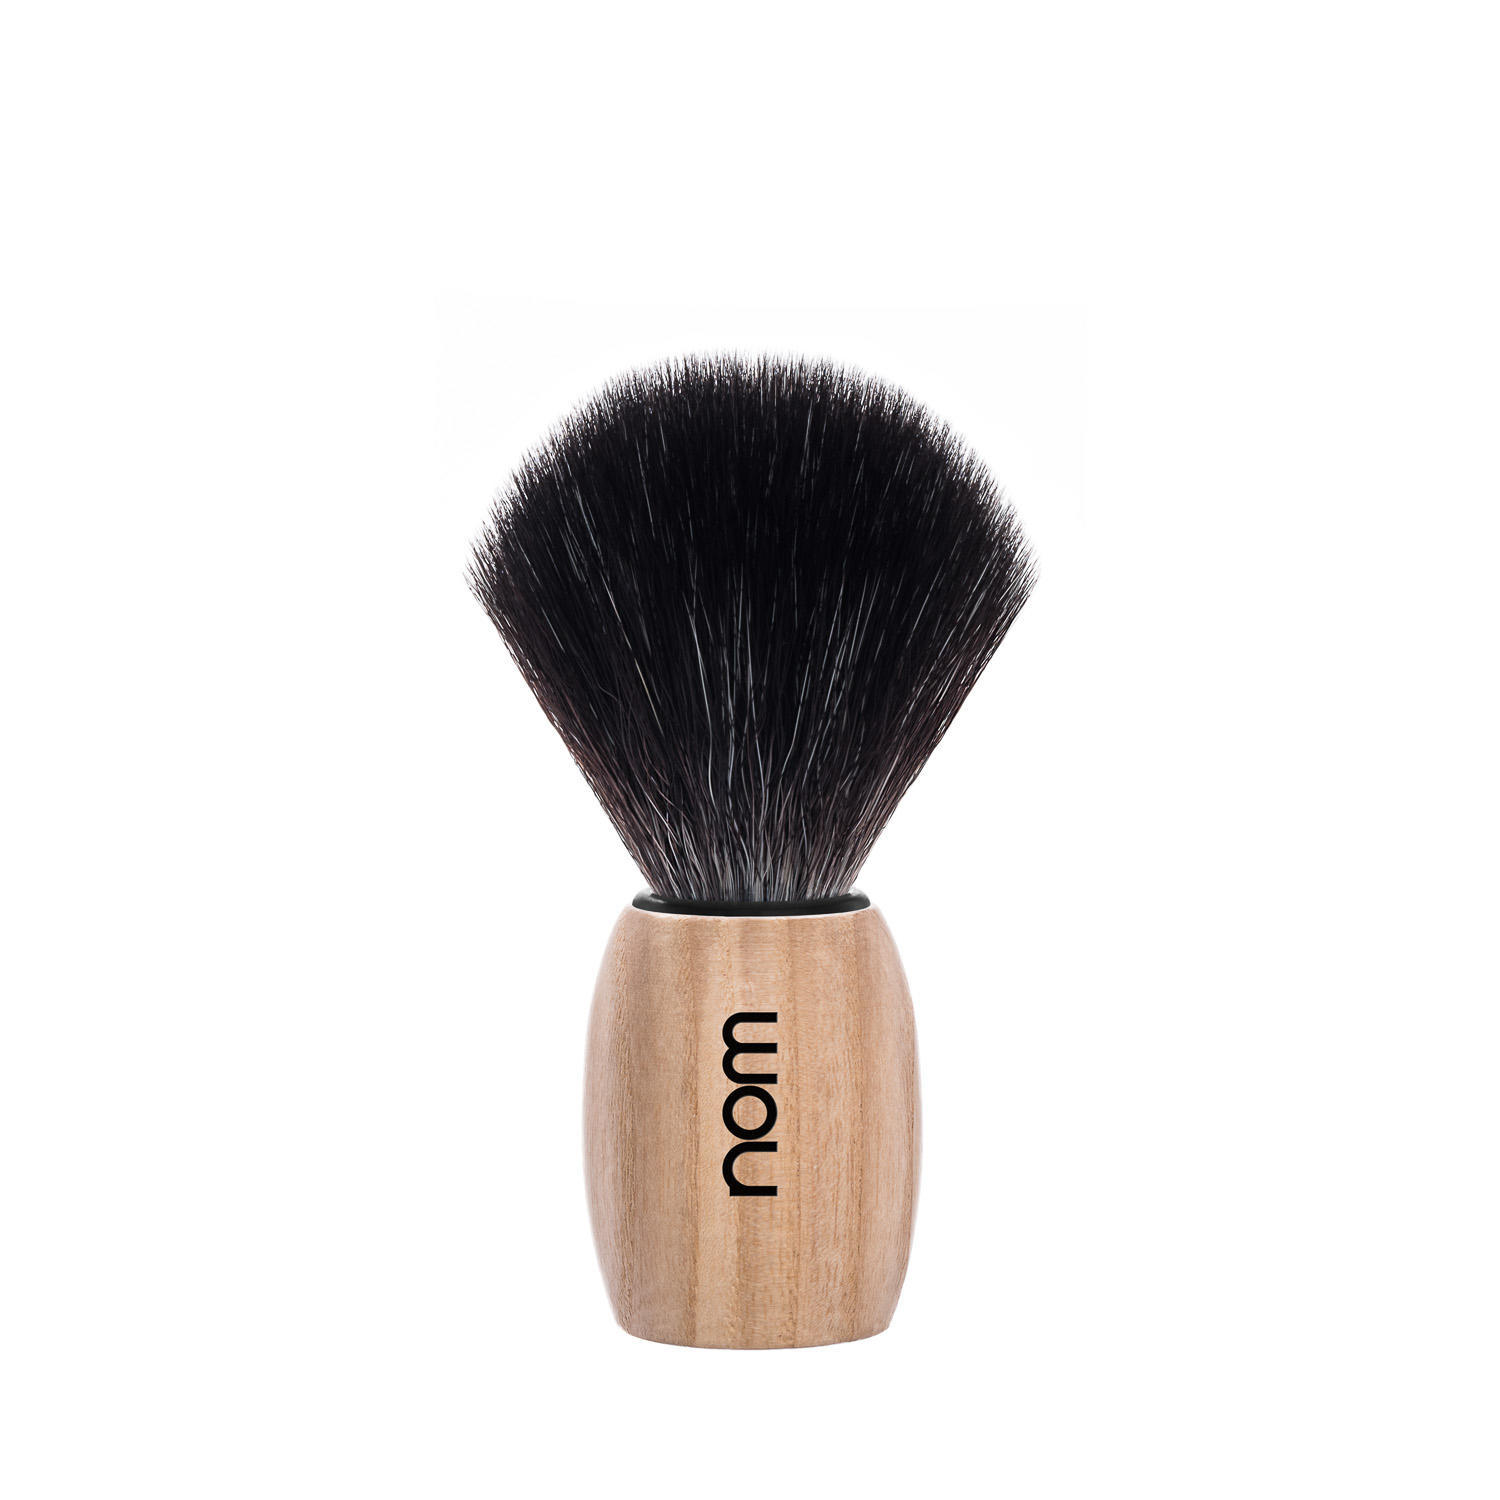 OLE21PA nom OLE, Pure Ash, Black Fibre Shaving Brush